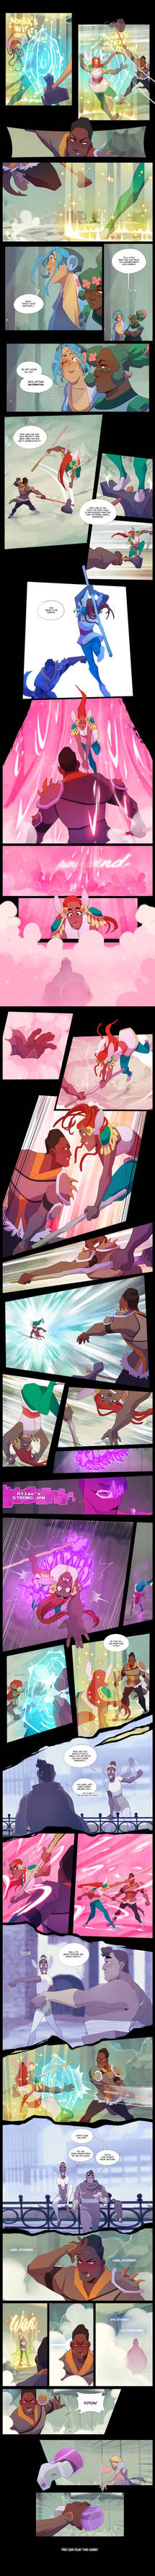 Burn Away - Page 34 by justsnooze